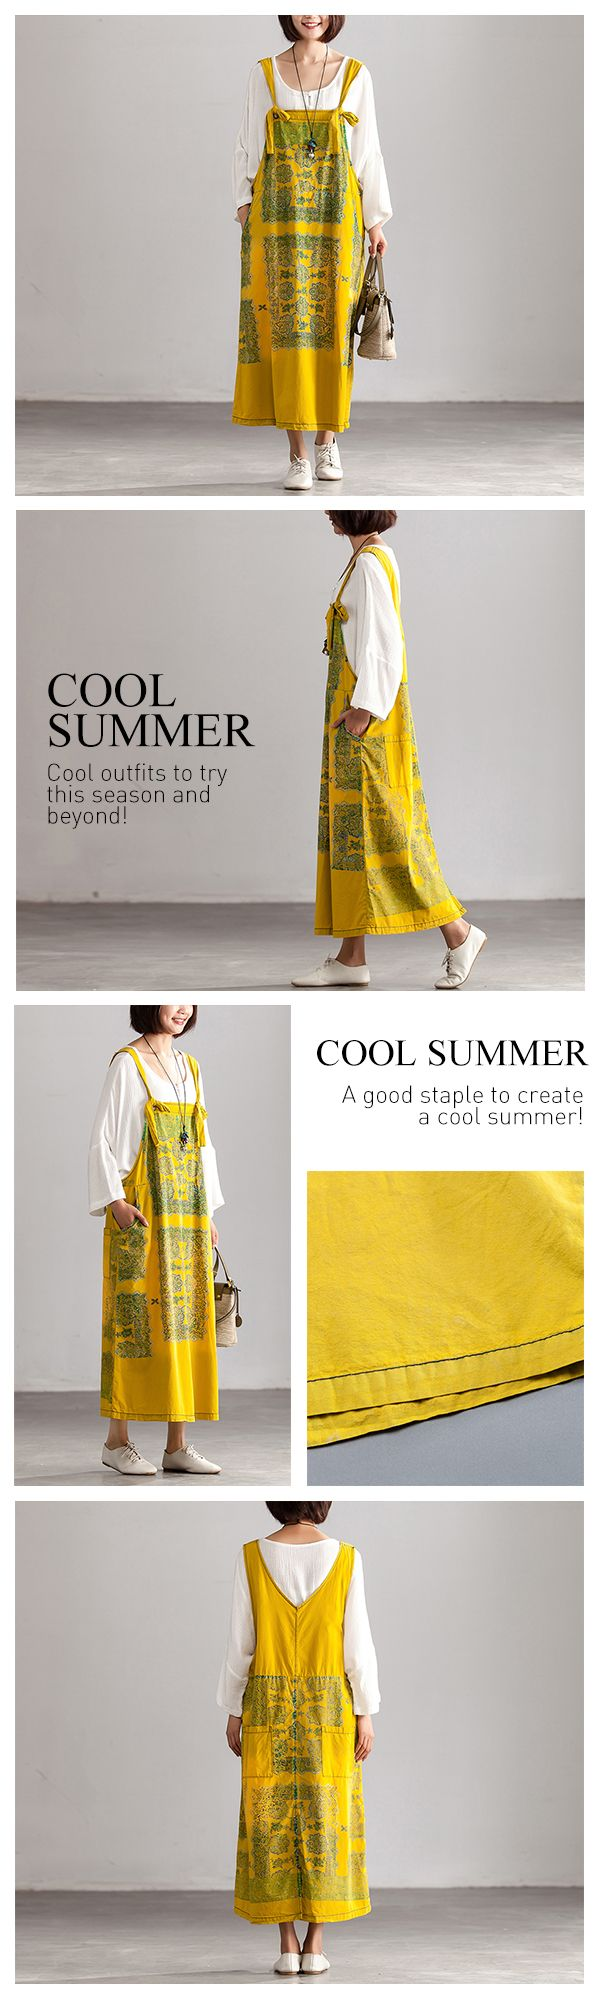 Summer floral pockets yellow long strap dress elbise pinterest